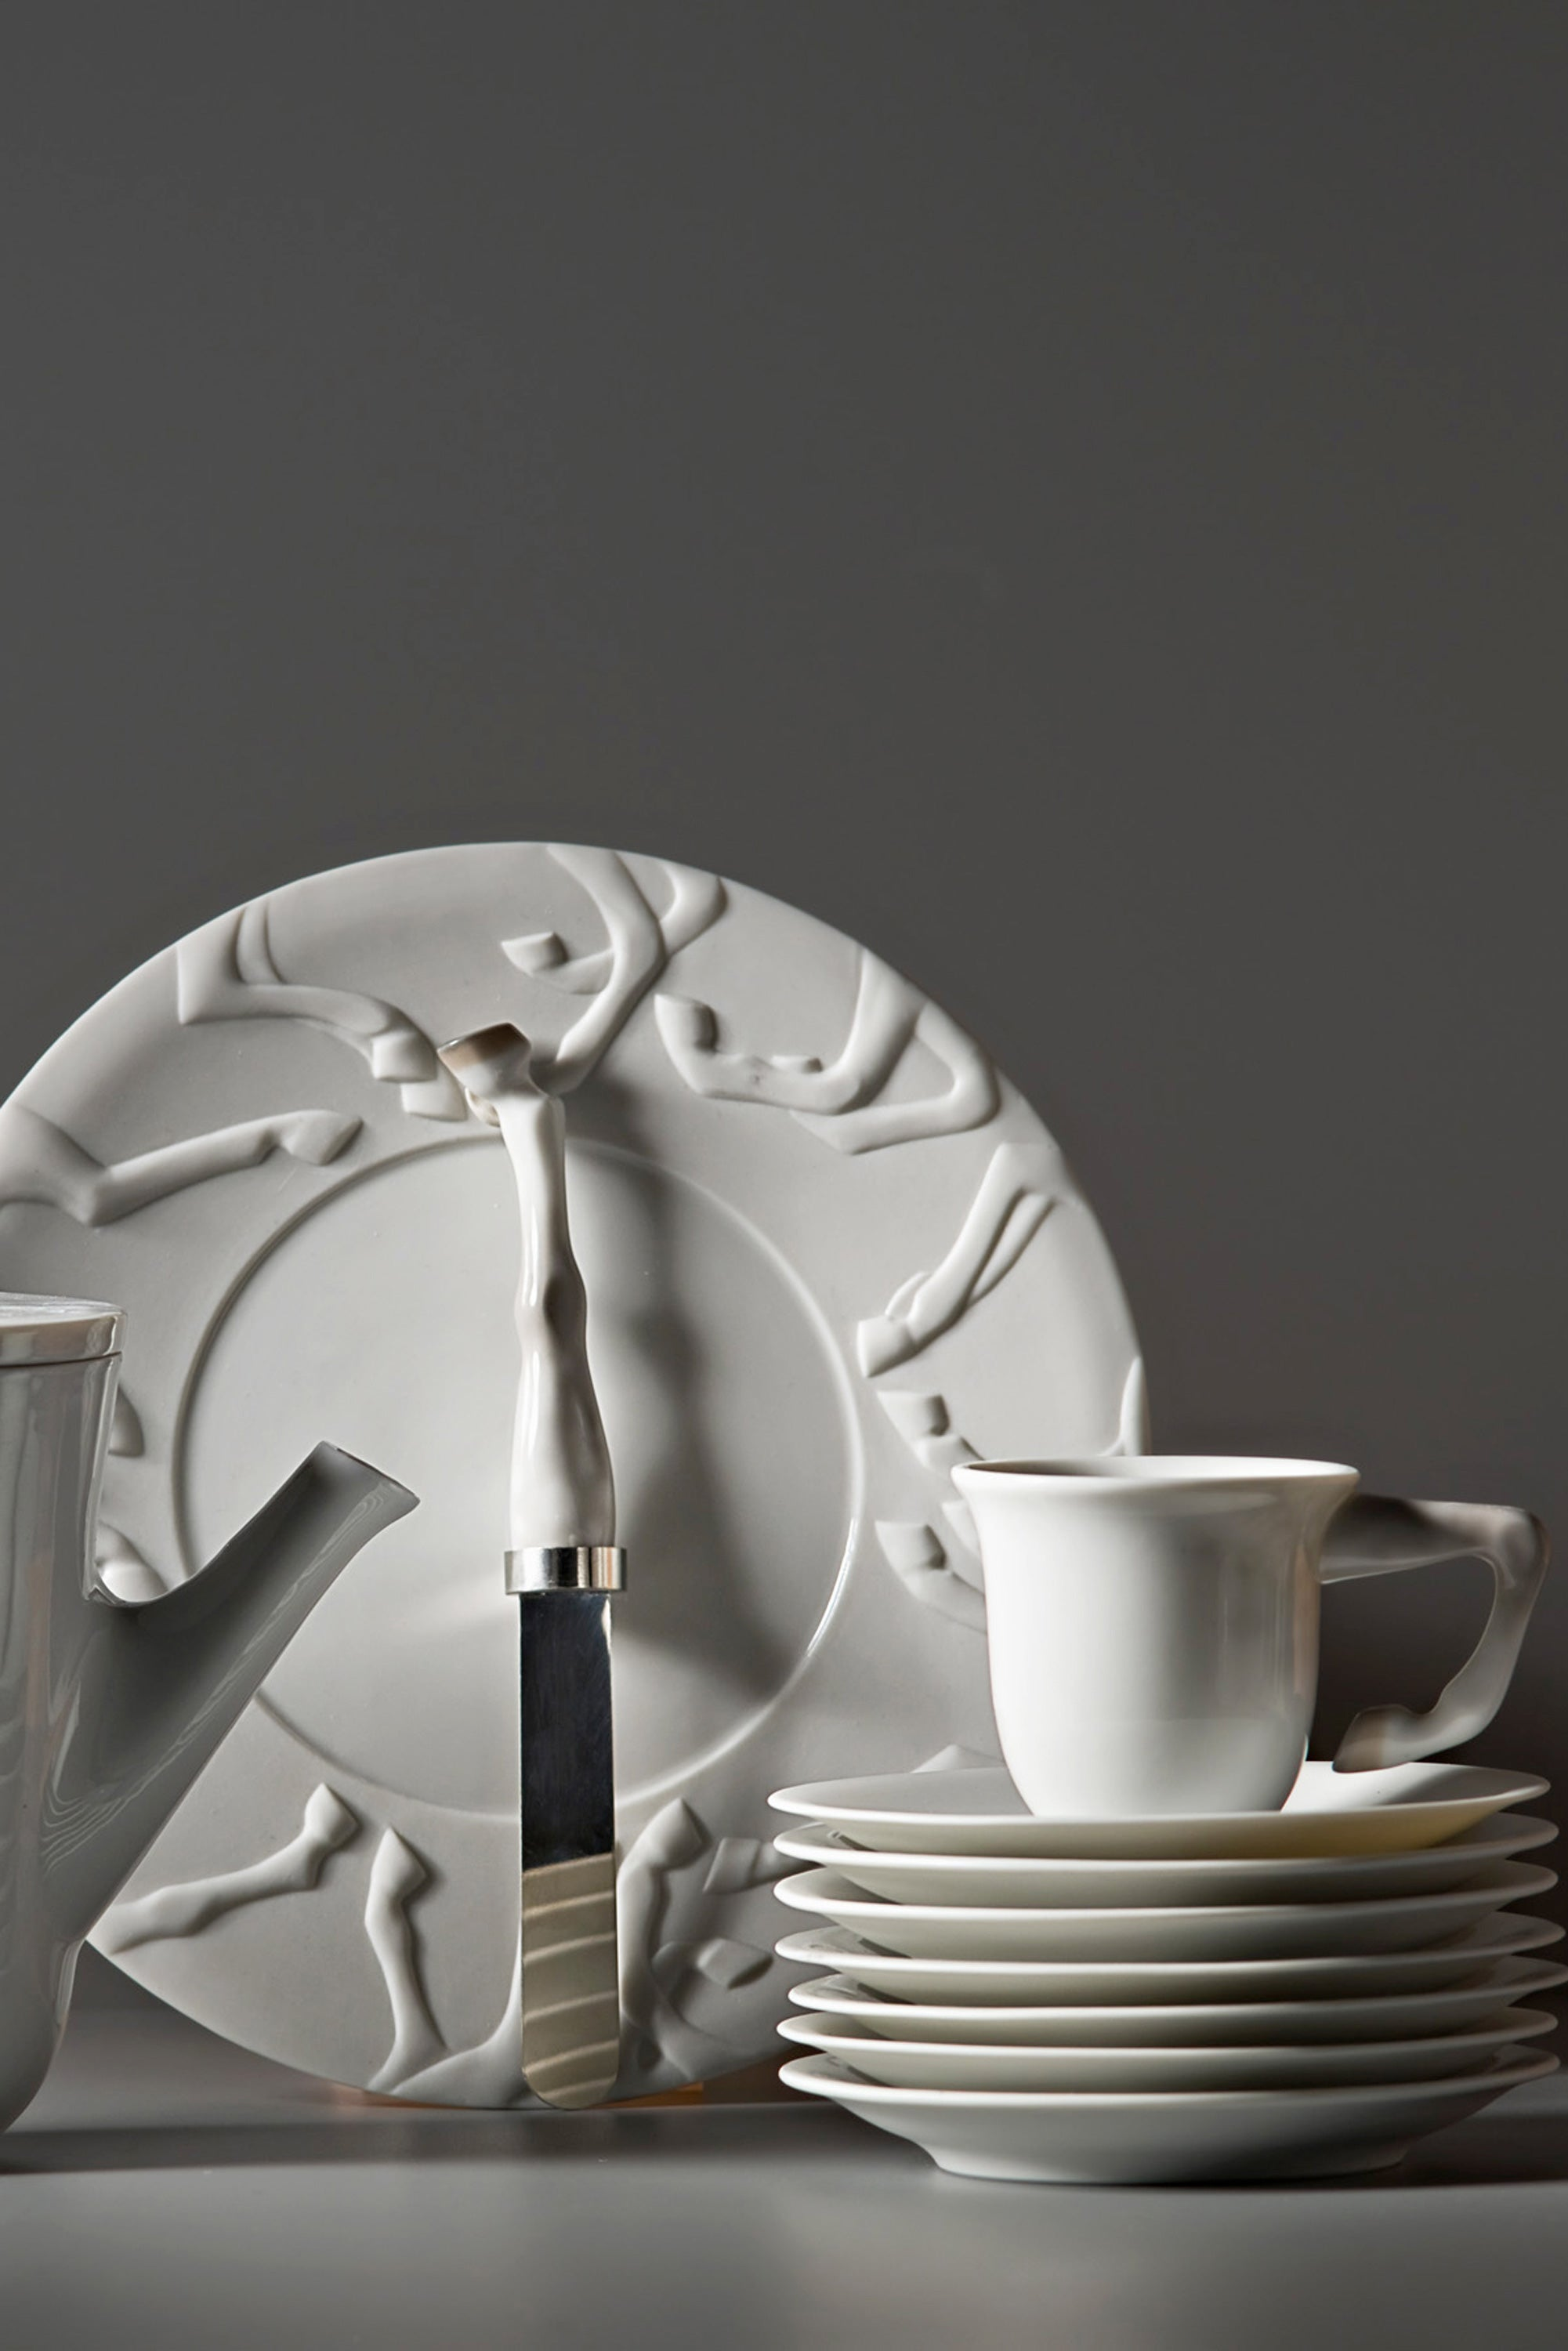 Lladro Equus Porcelain Tableware Collection Designed by London Based Studio Bodo Sperlein